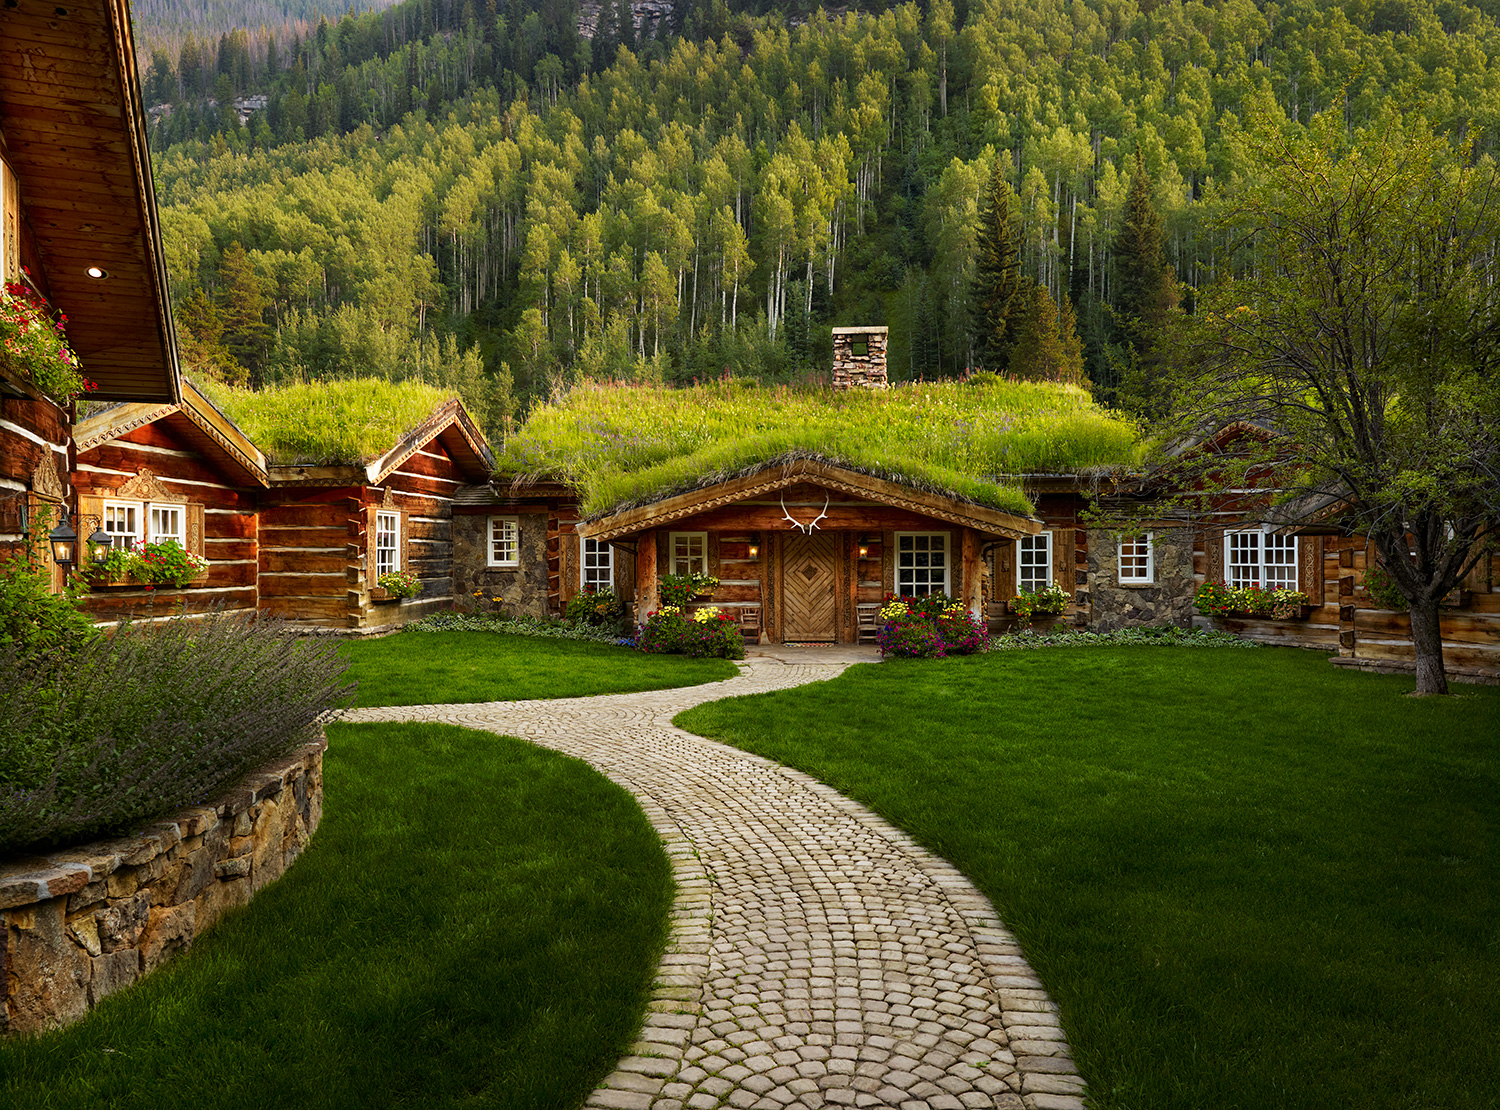 Grass Roof Cabin in Vail Colorado